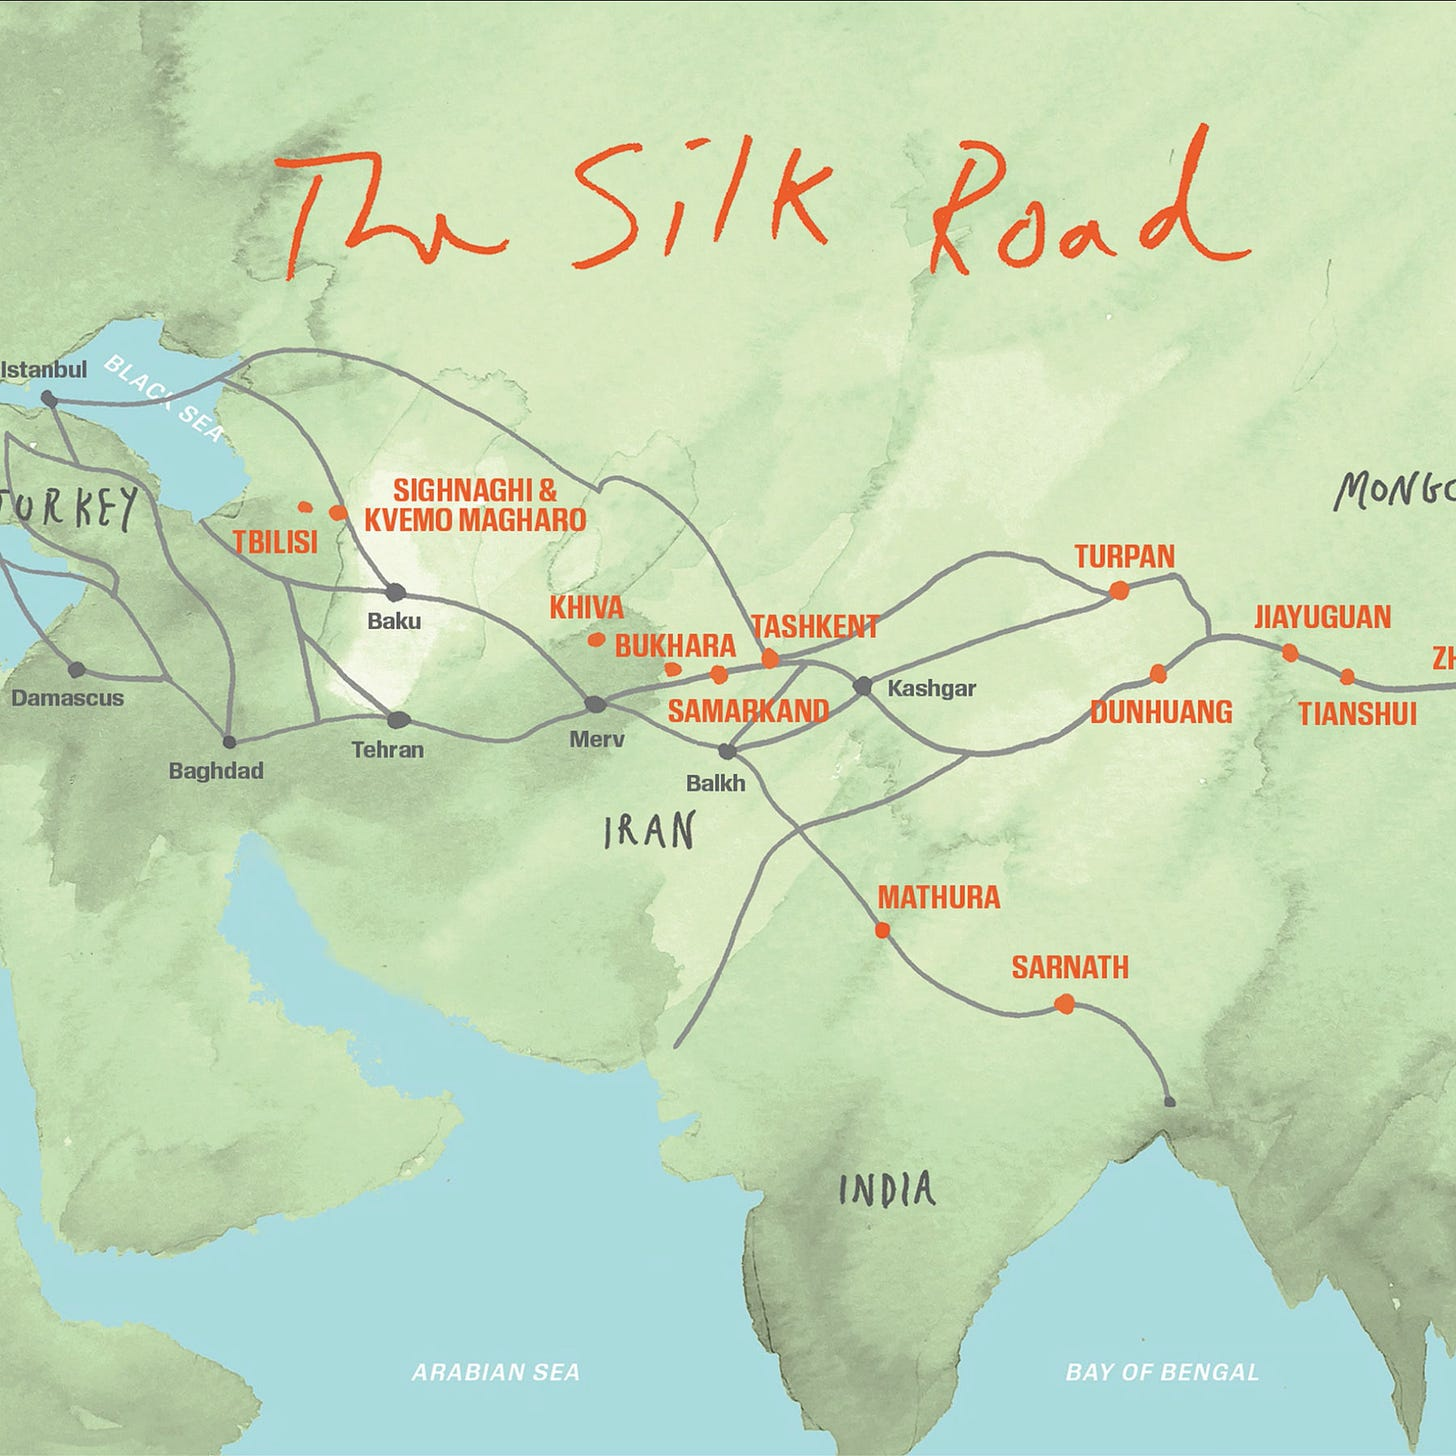 The Silk Road: The Route That Made the World - The New York Times